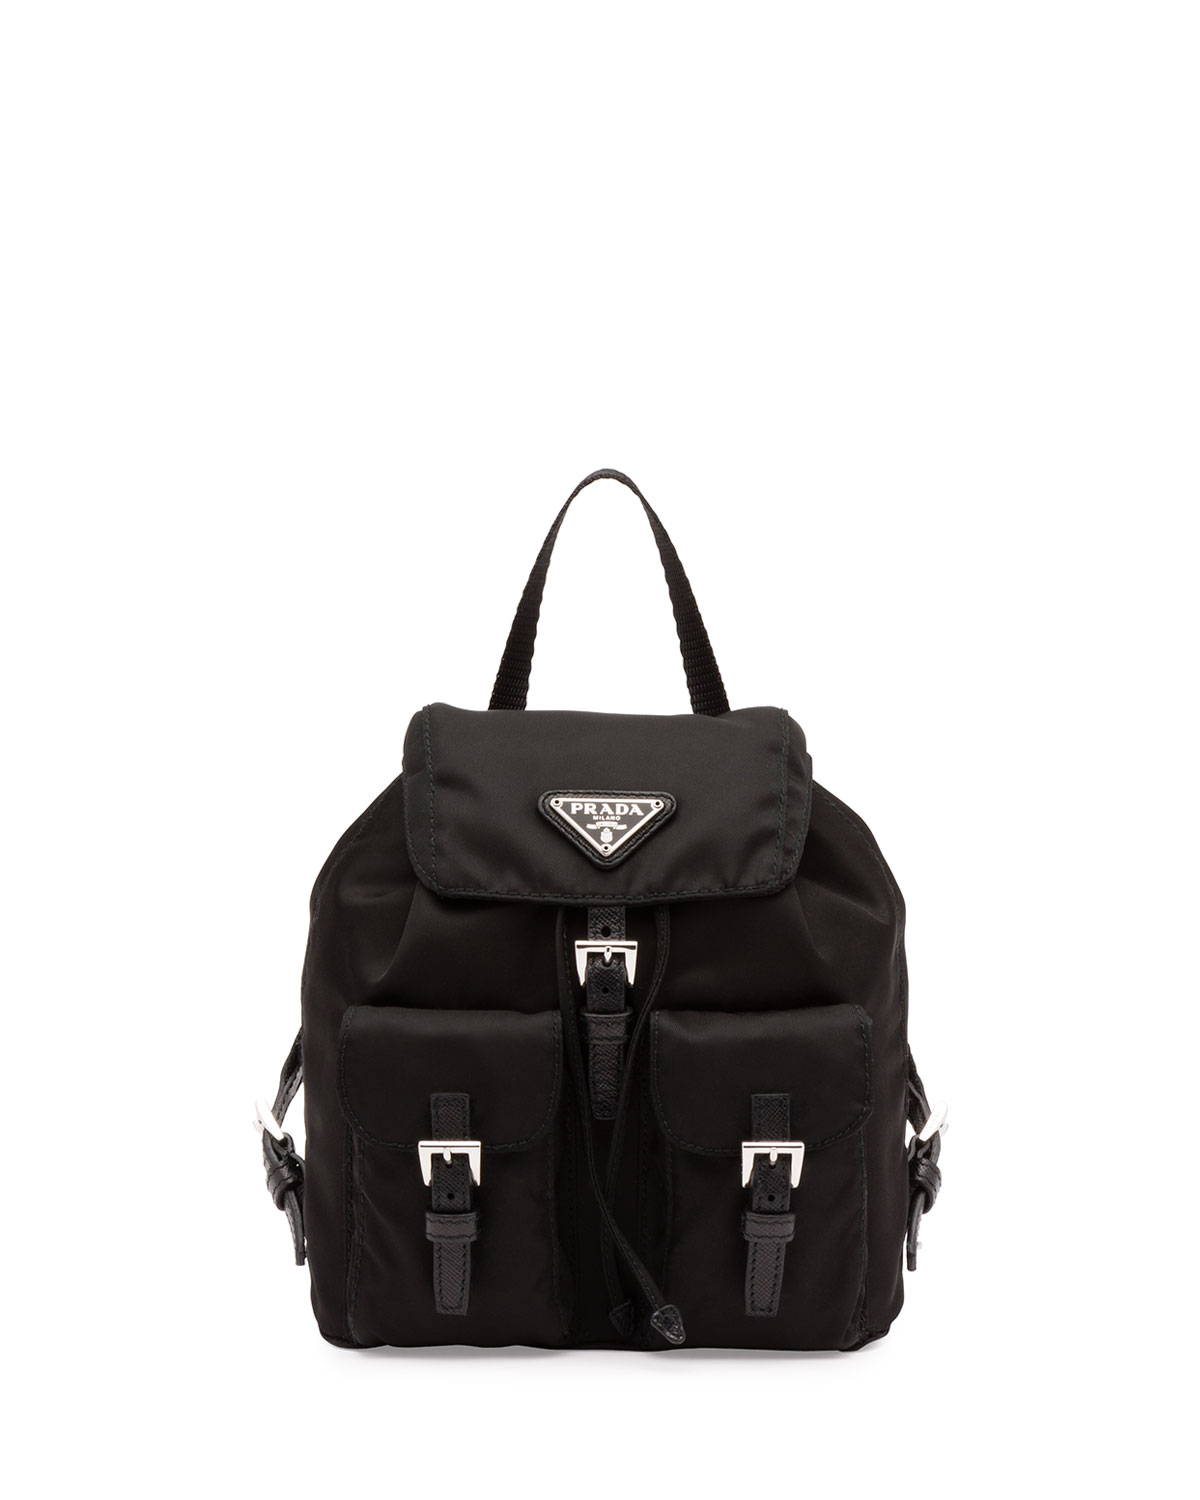 2c1631c941507c Prada Vela Mini Crossbody Backpack Bag, Black (Nero) | Neiman Marcus